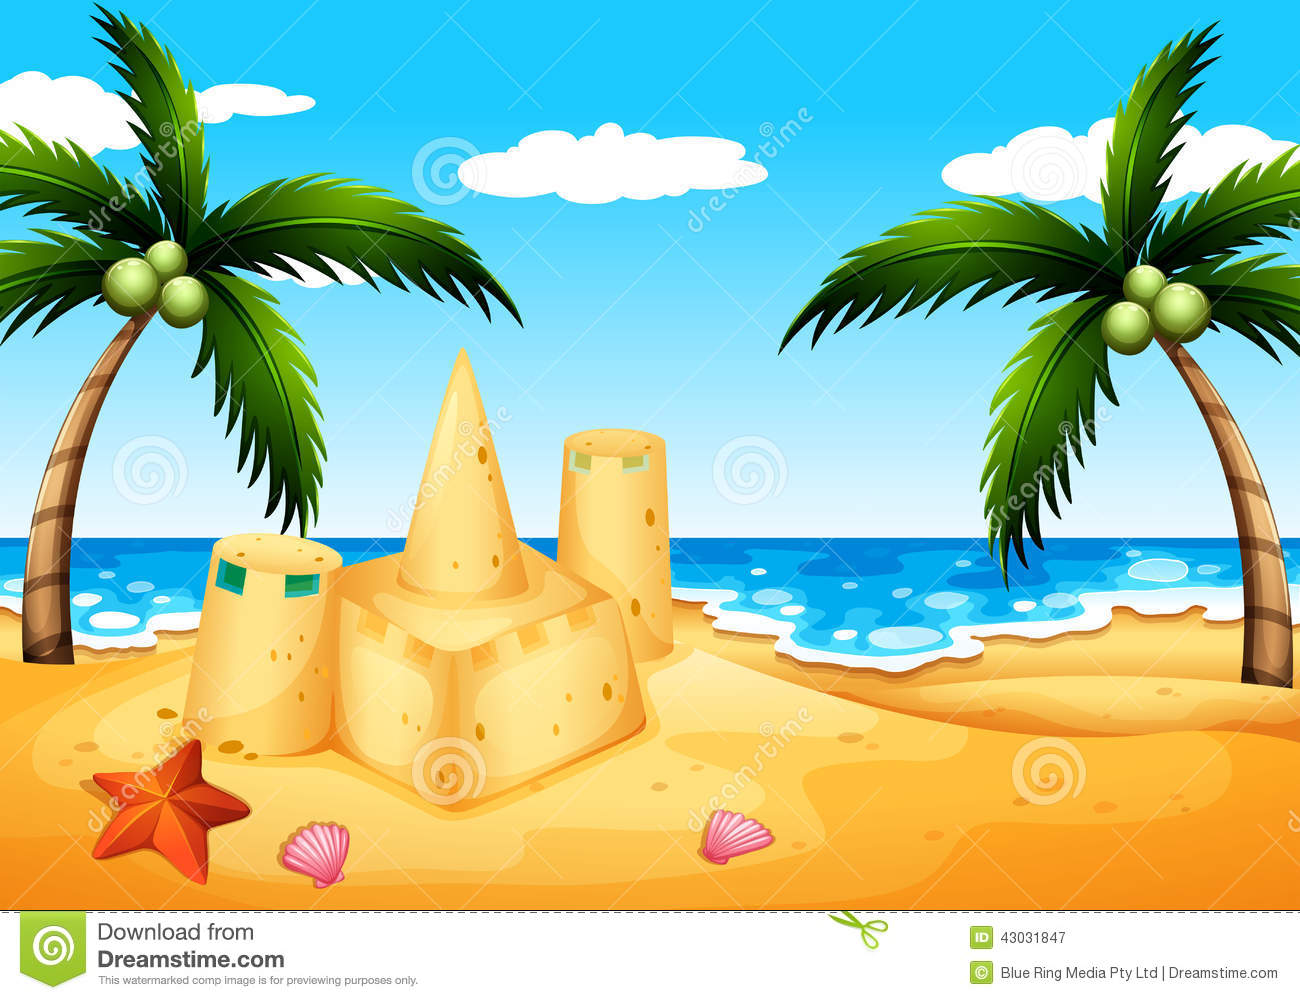 Beach Coconut Trees Sand Castle